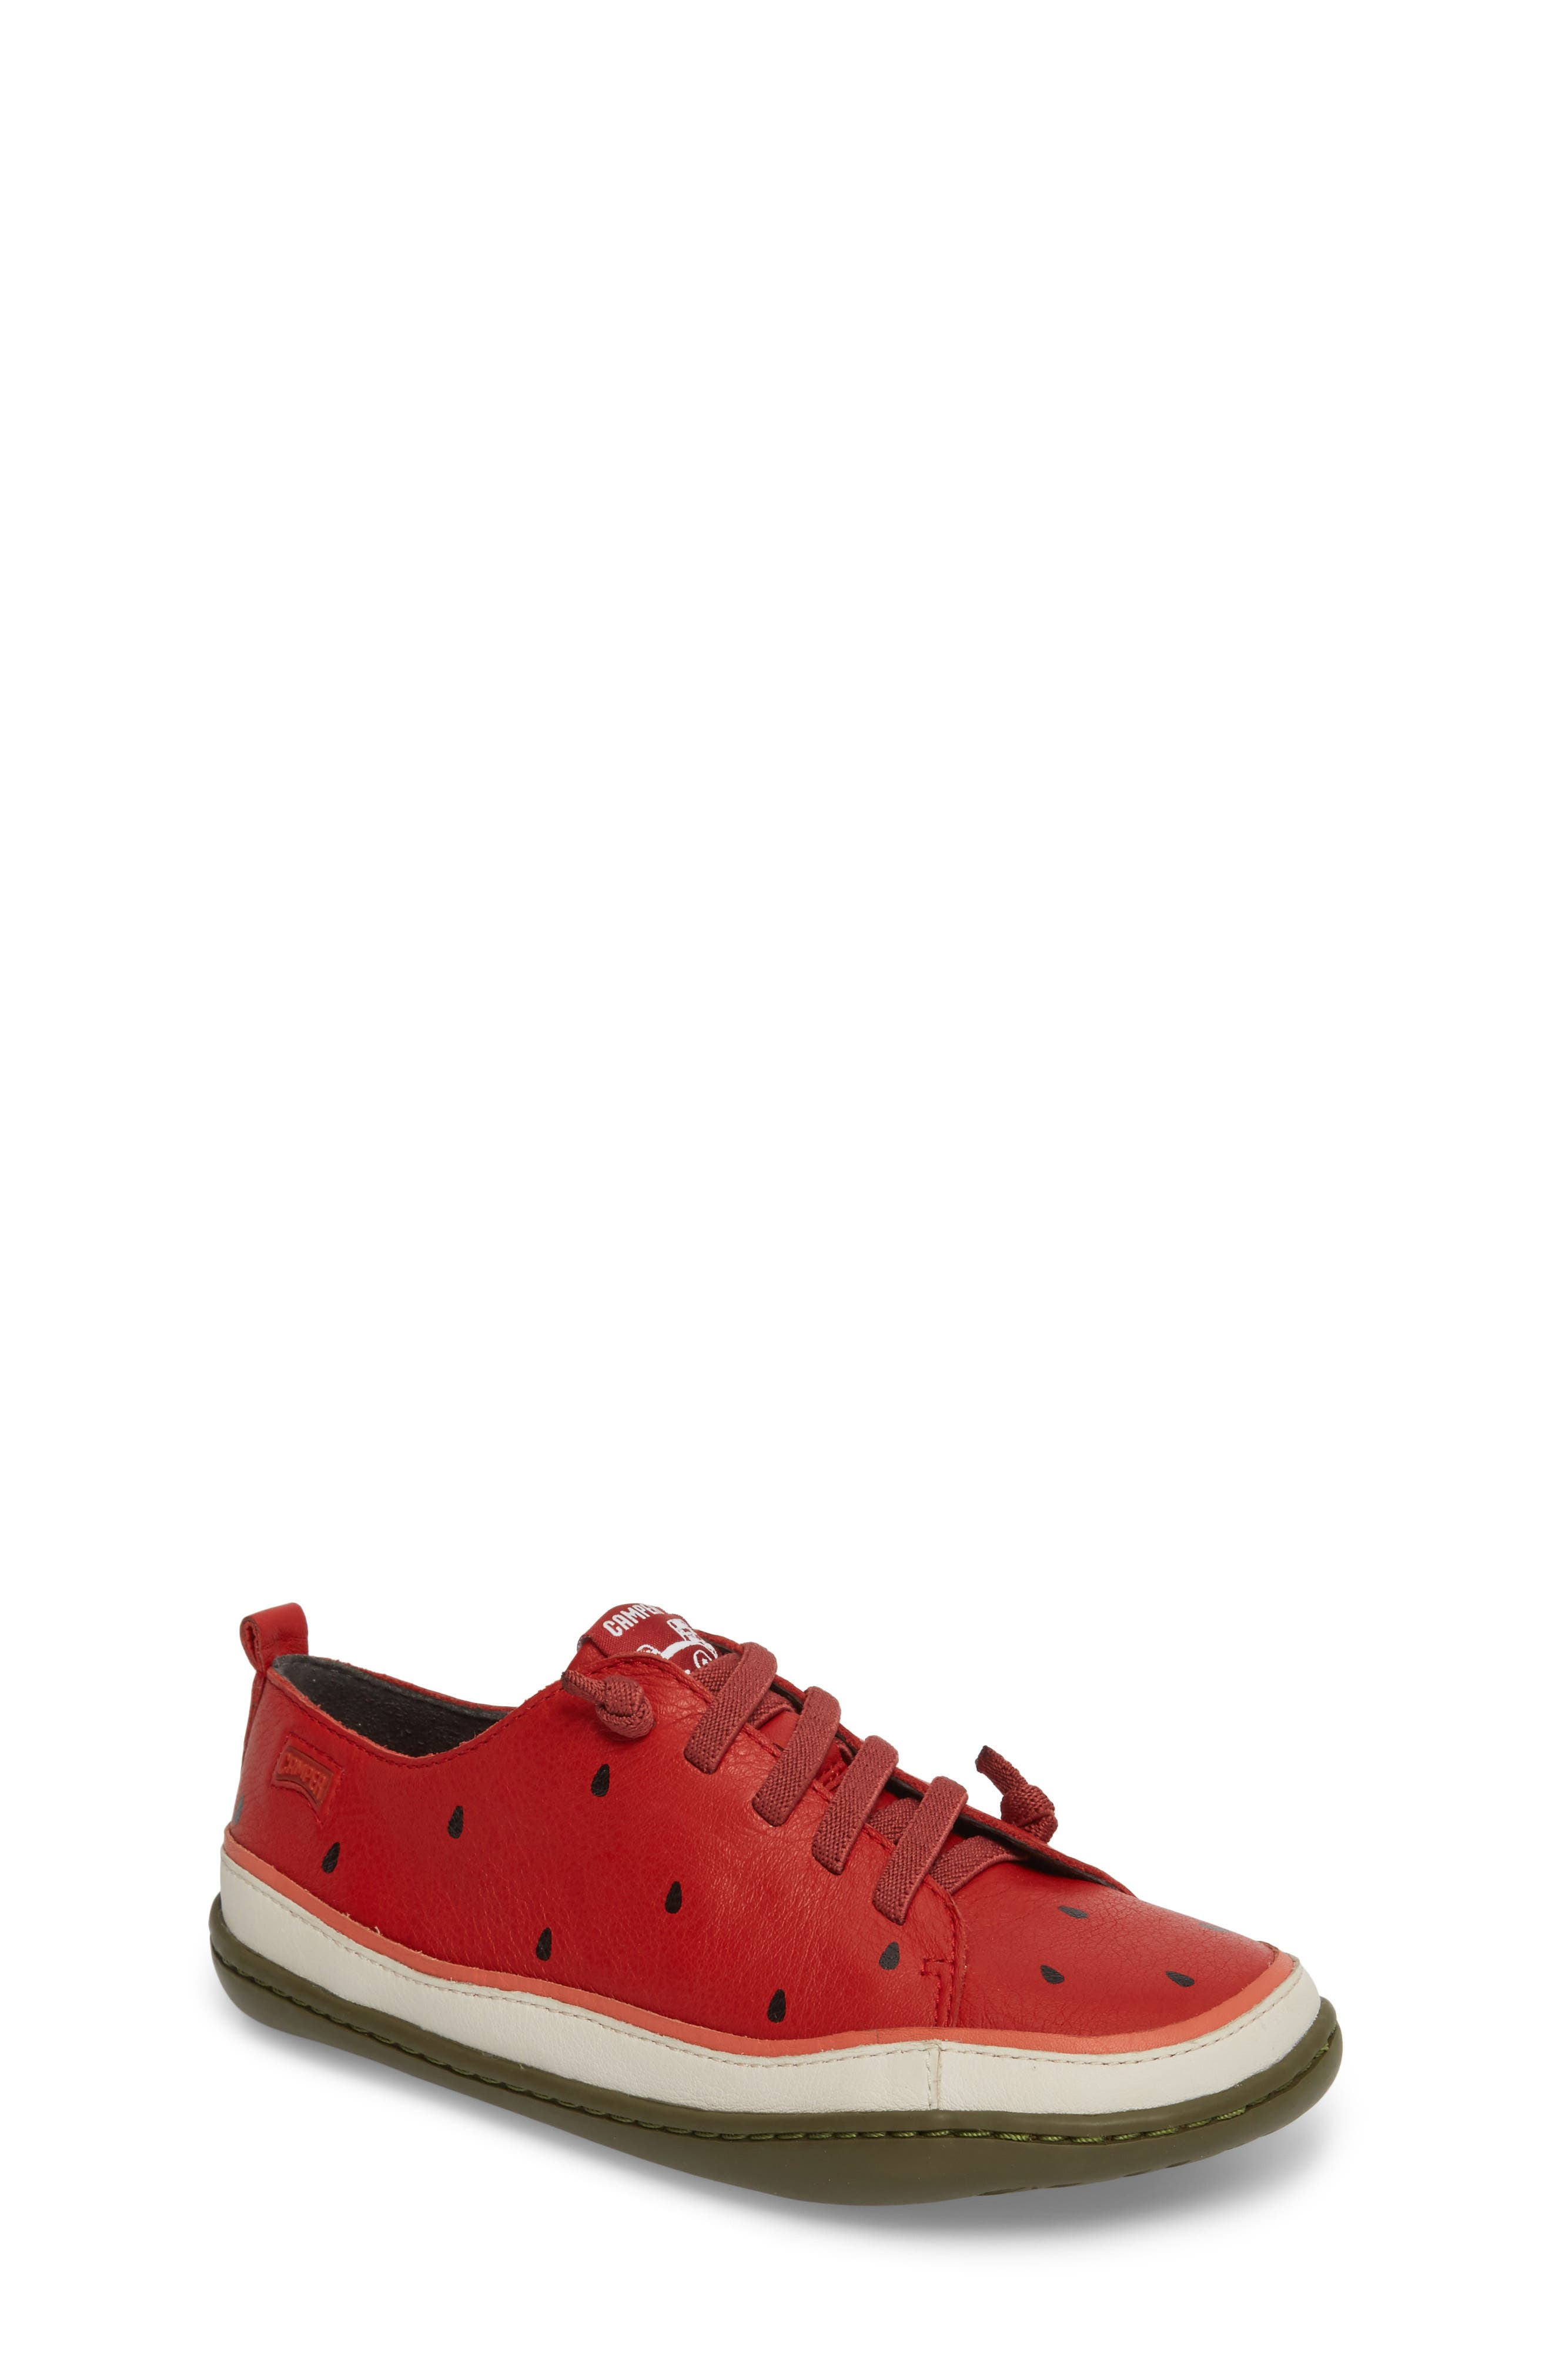 Twins Watermelon Sneaker,                             Main thumbnail 1, color,                             Red